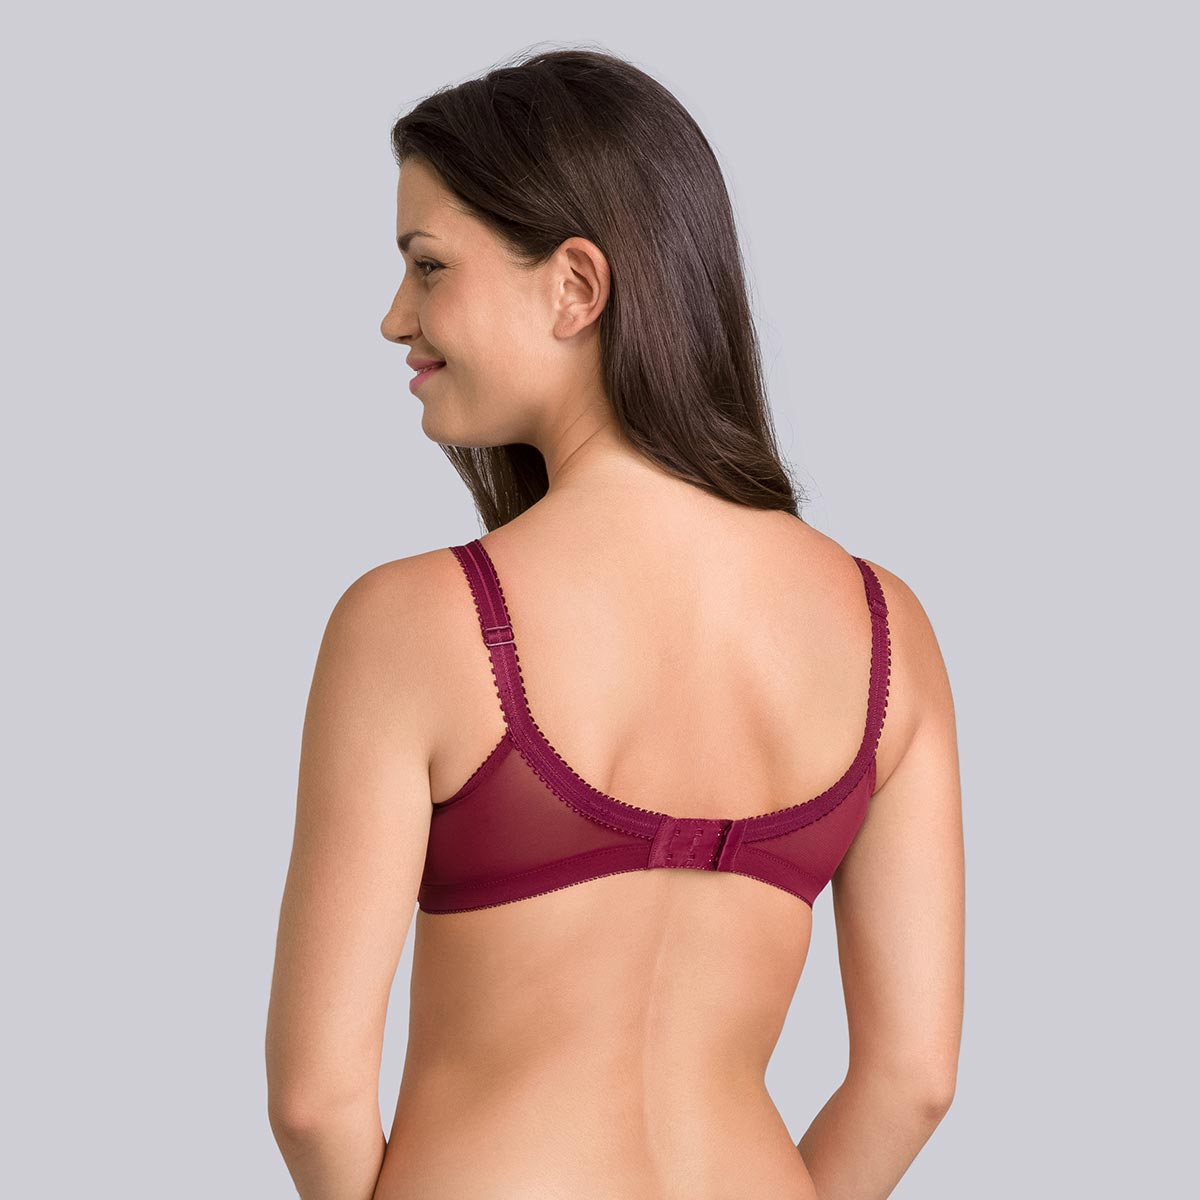 Reggiseno senza ferretto viola bordò - Criss Cross -PLAYTEX